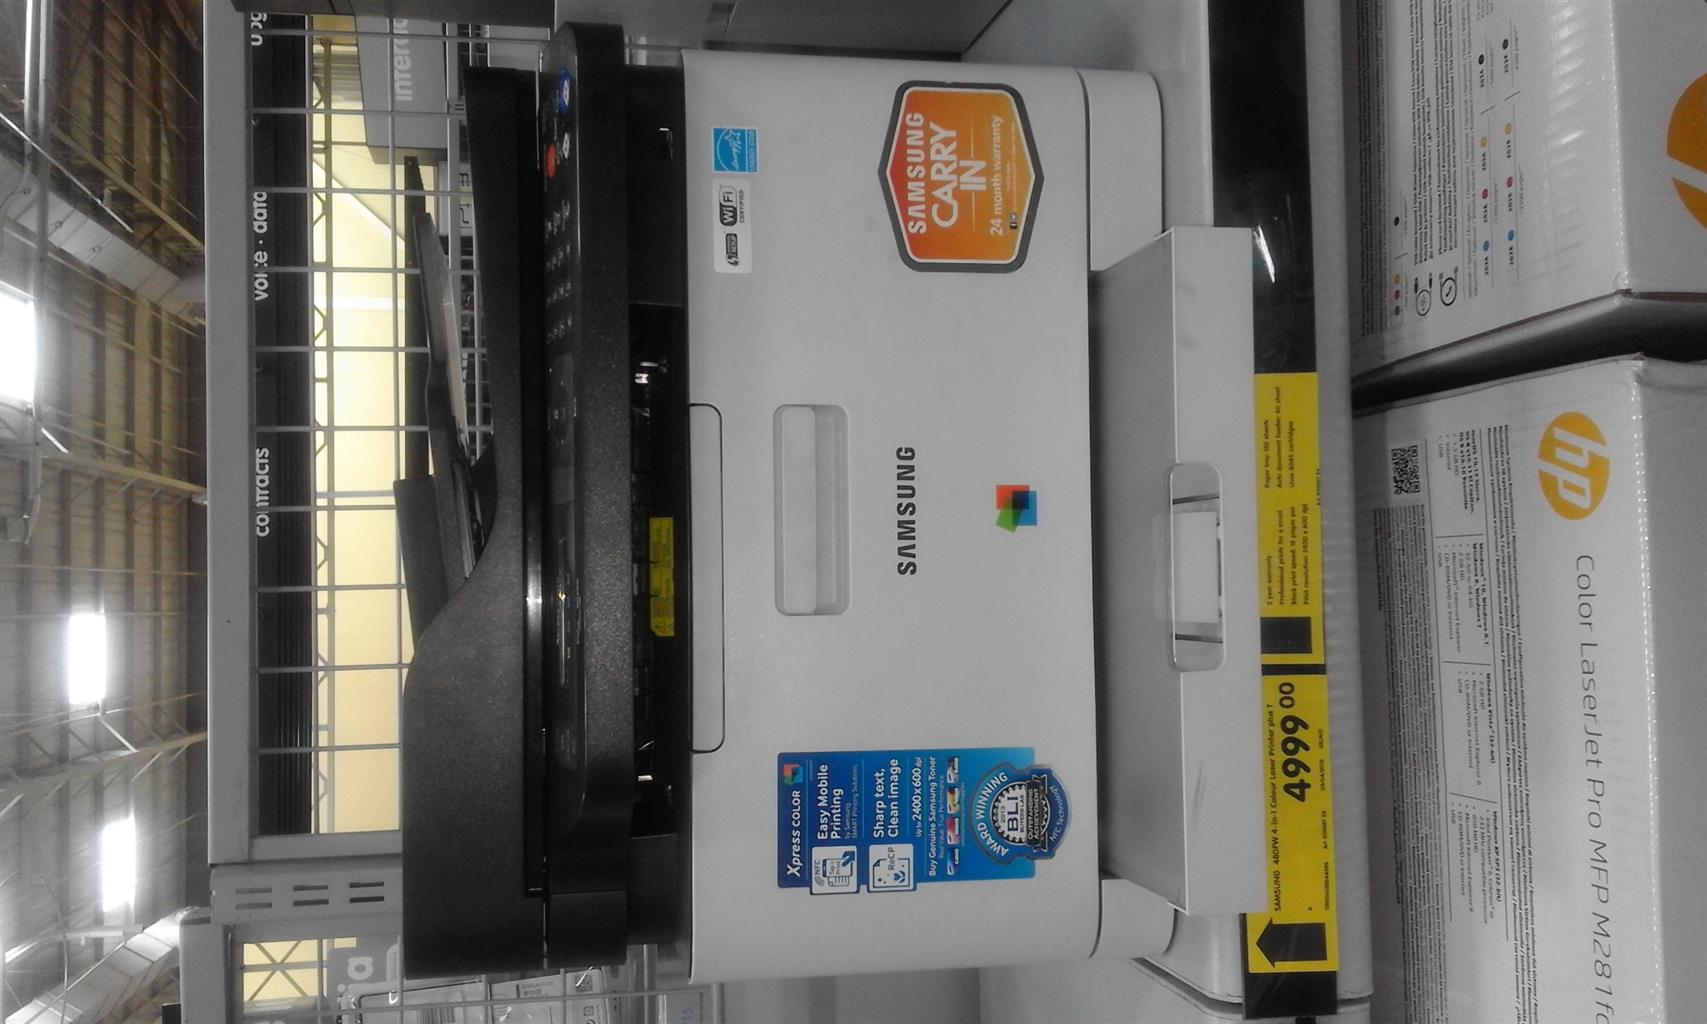 Samsung CLX-3305FW All-in-one Colour  Lazer Printer